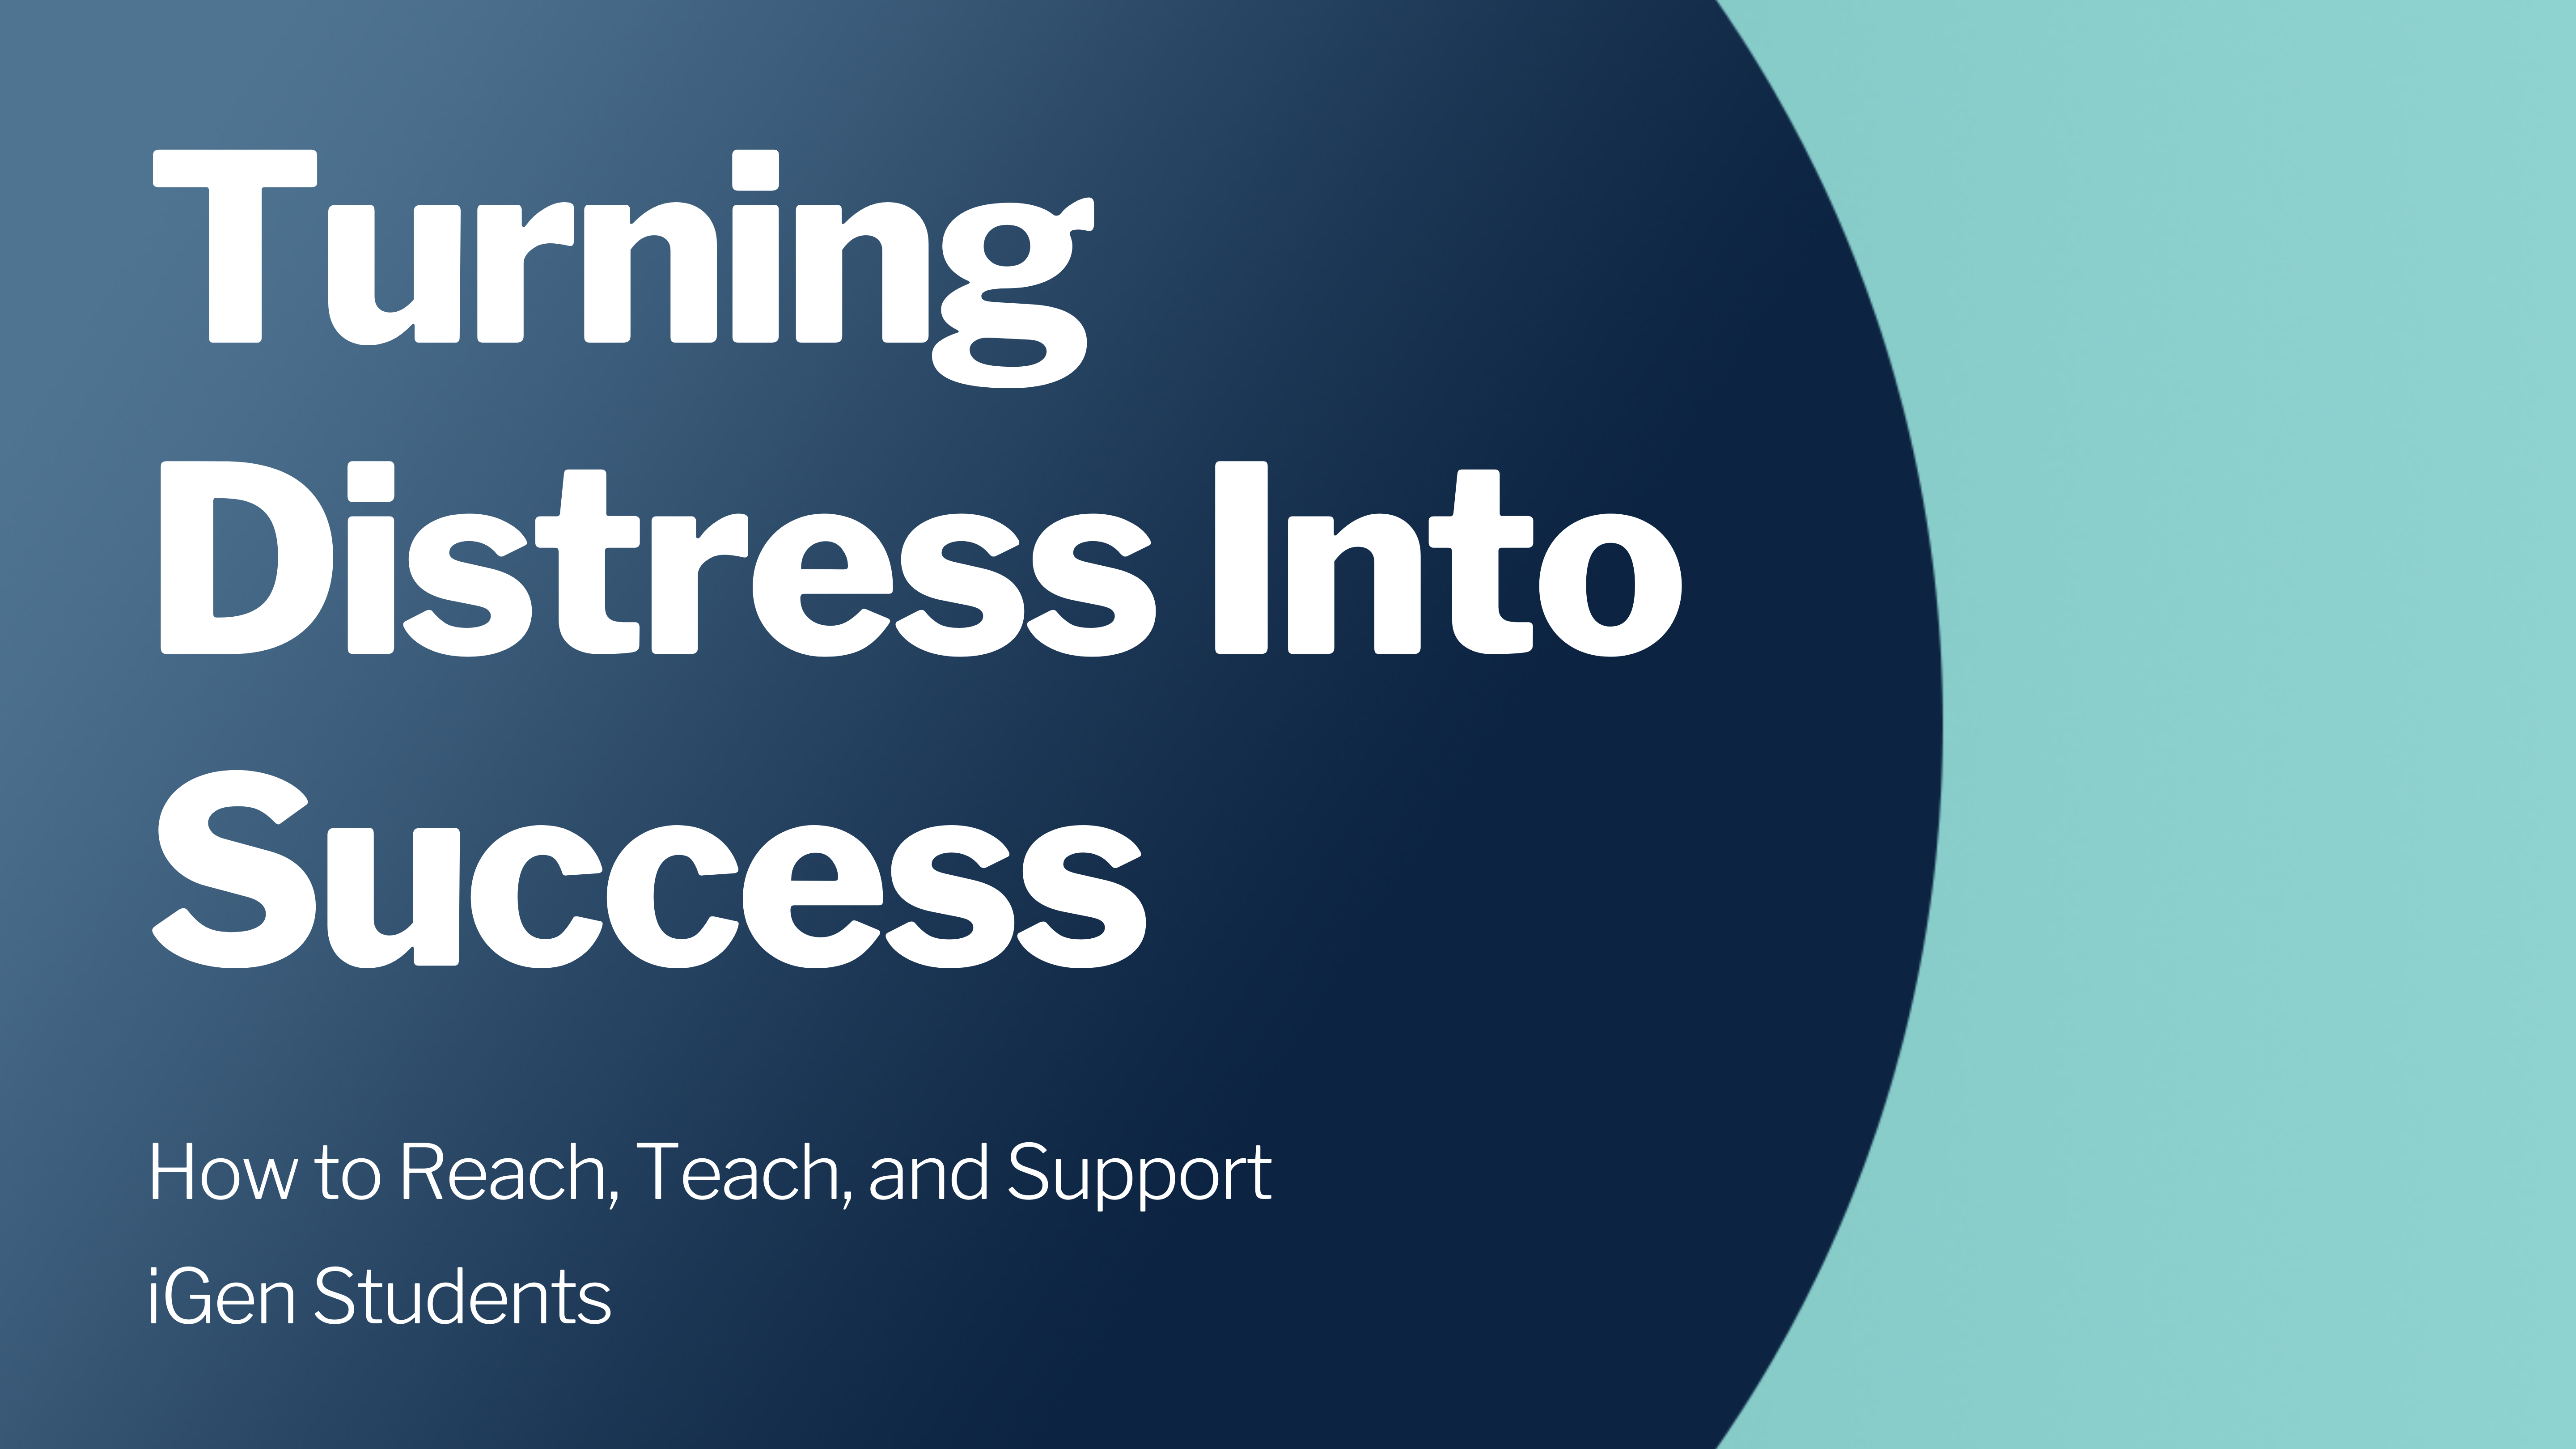 Turning Distress Into Success_ How to Reach, Teach, And Support iGen Students